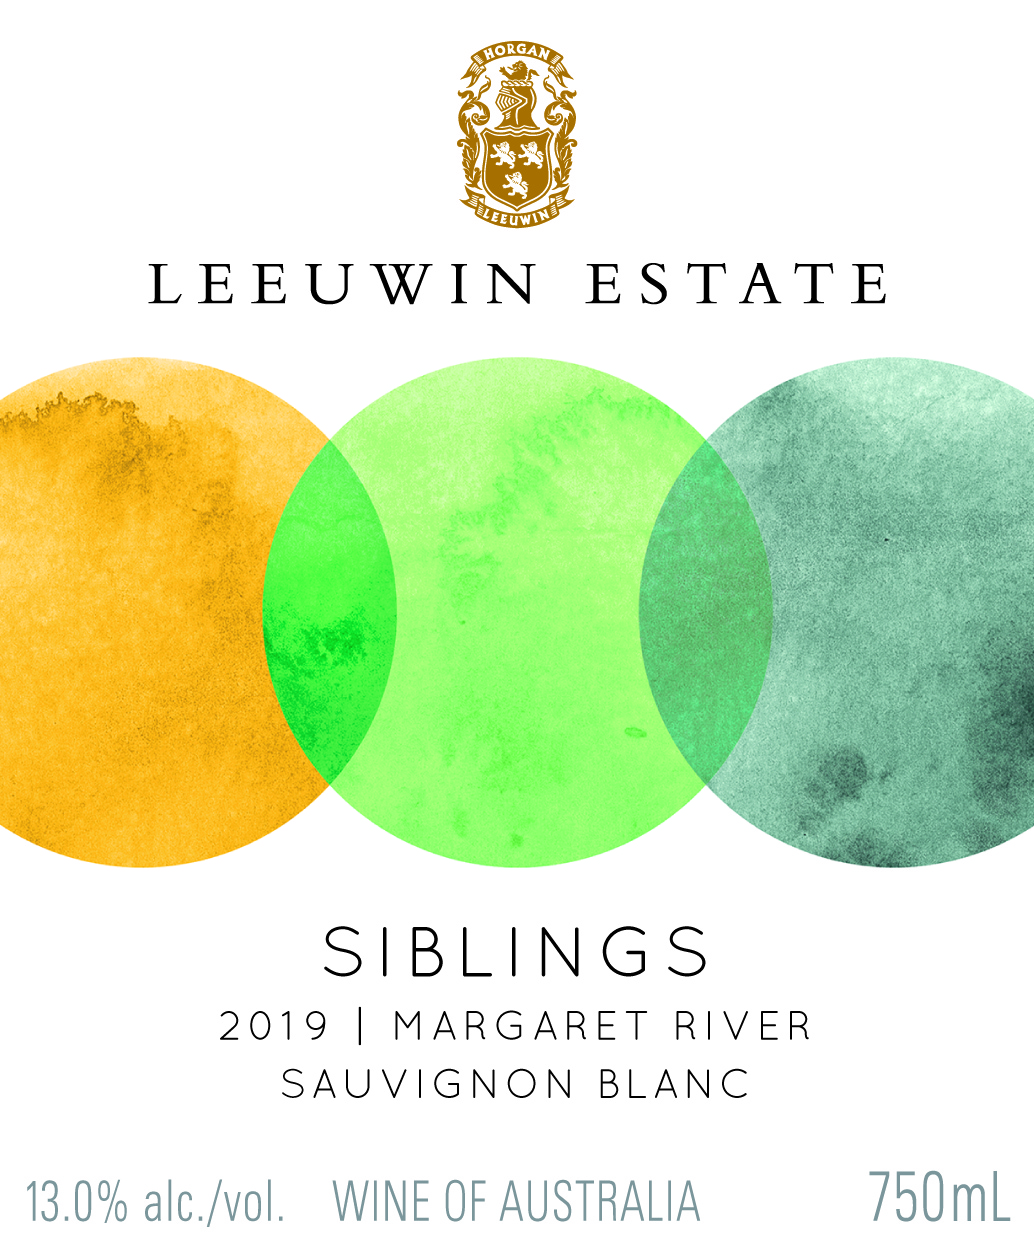 Leeuwin Estate Siblings Sauvignon Blanc Semillon 2016 MAIN